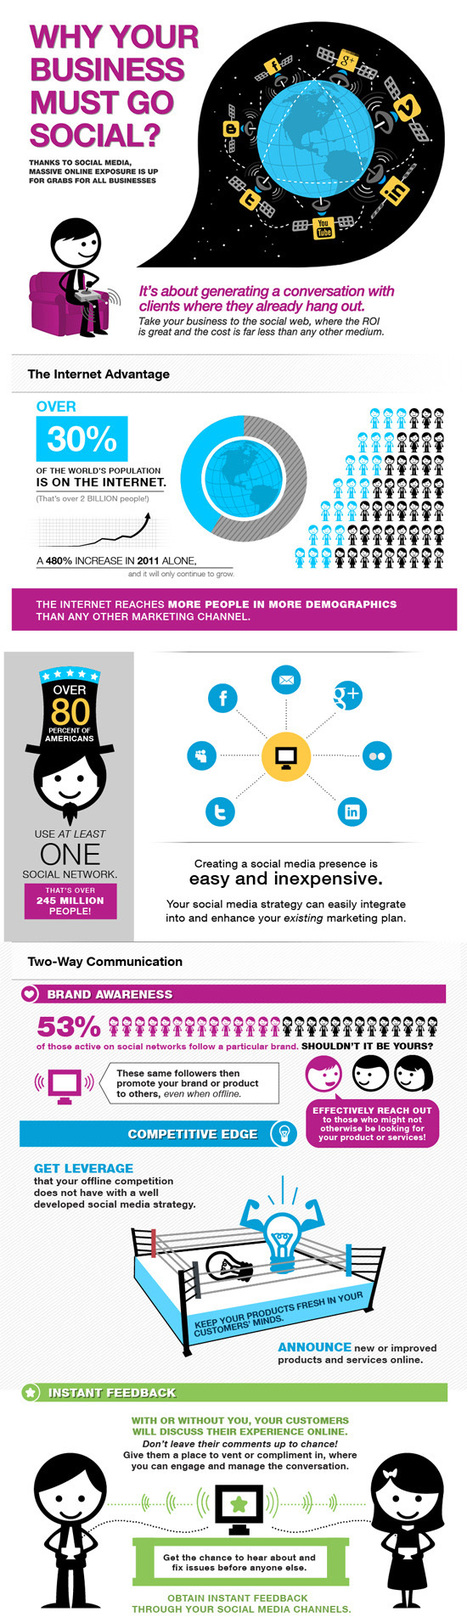 Why Your Business Must Go Social? | Infographic | SOCIAL MEDIA MARKETING TIPS | Scoop.it